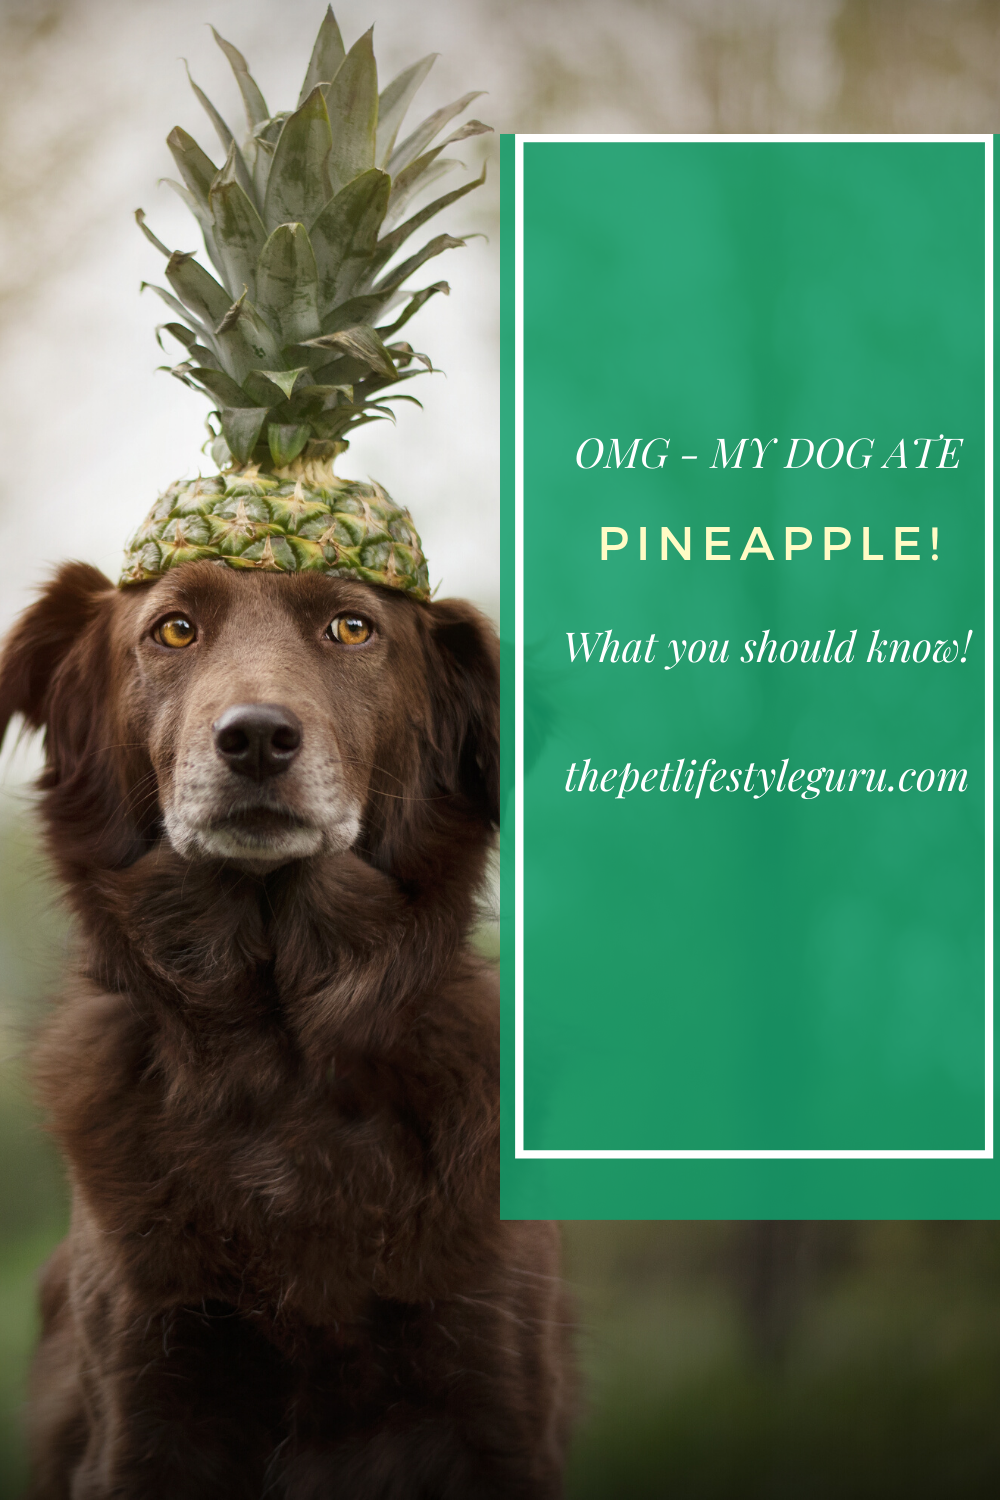 Dog Ate Pineapple? Don't Freak Out Here's Why in 2020